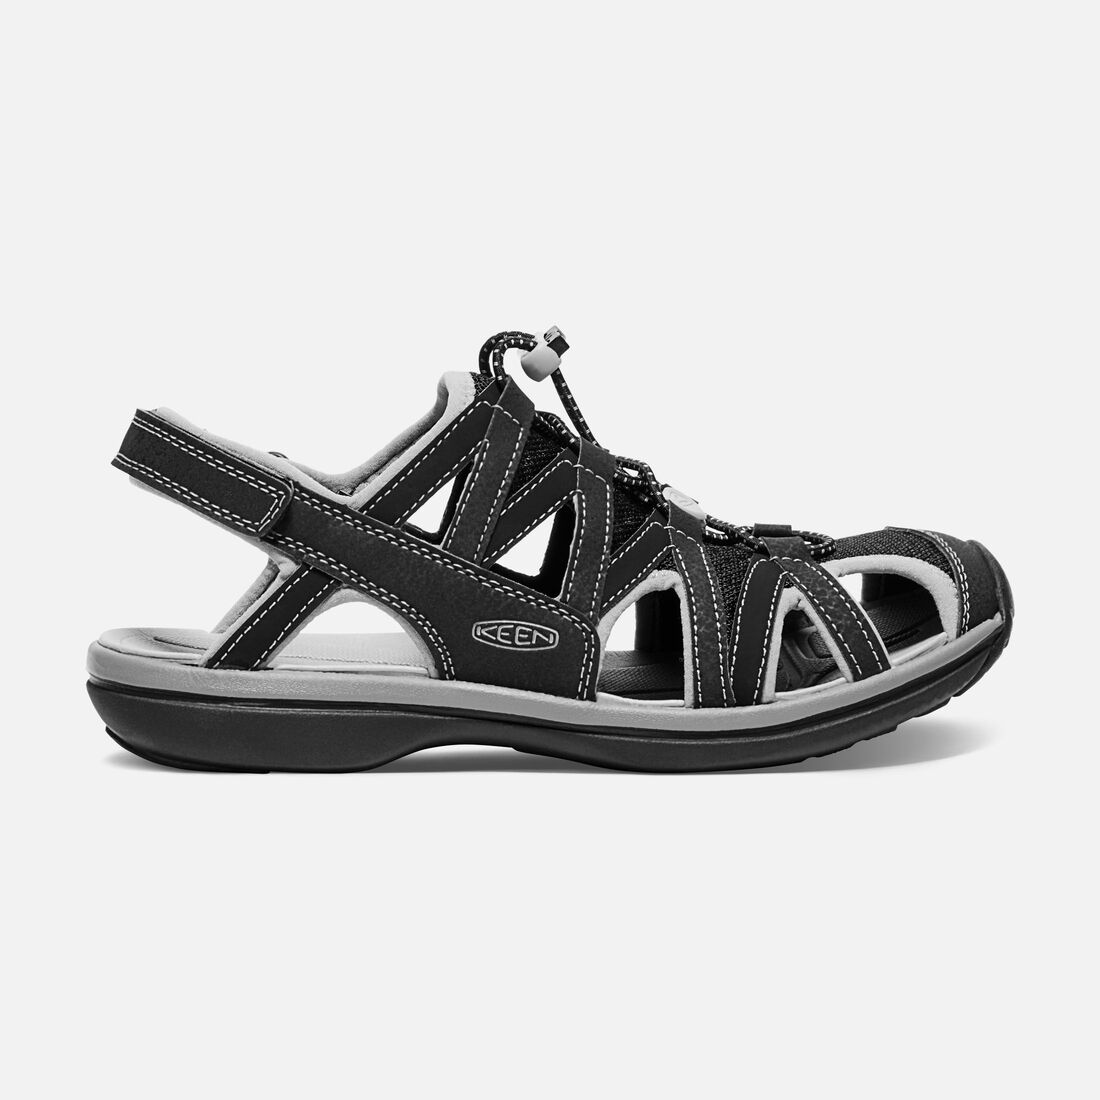 Women's Sage Sandal in Black/Black - large view.